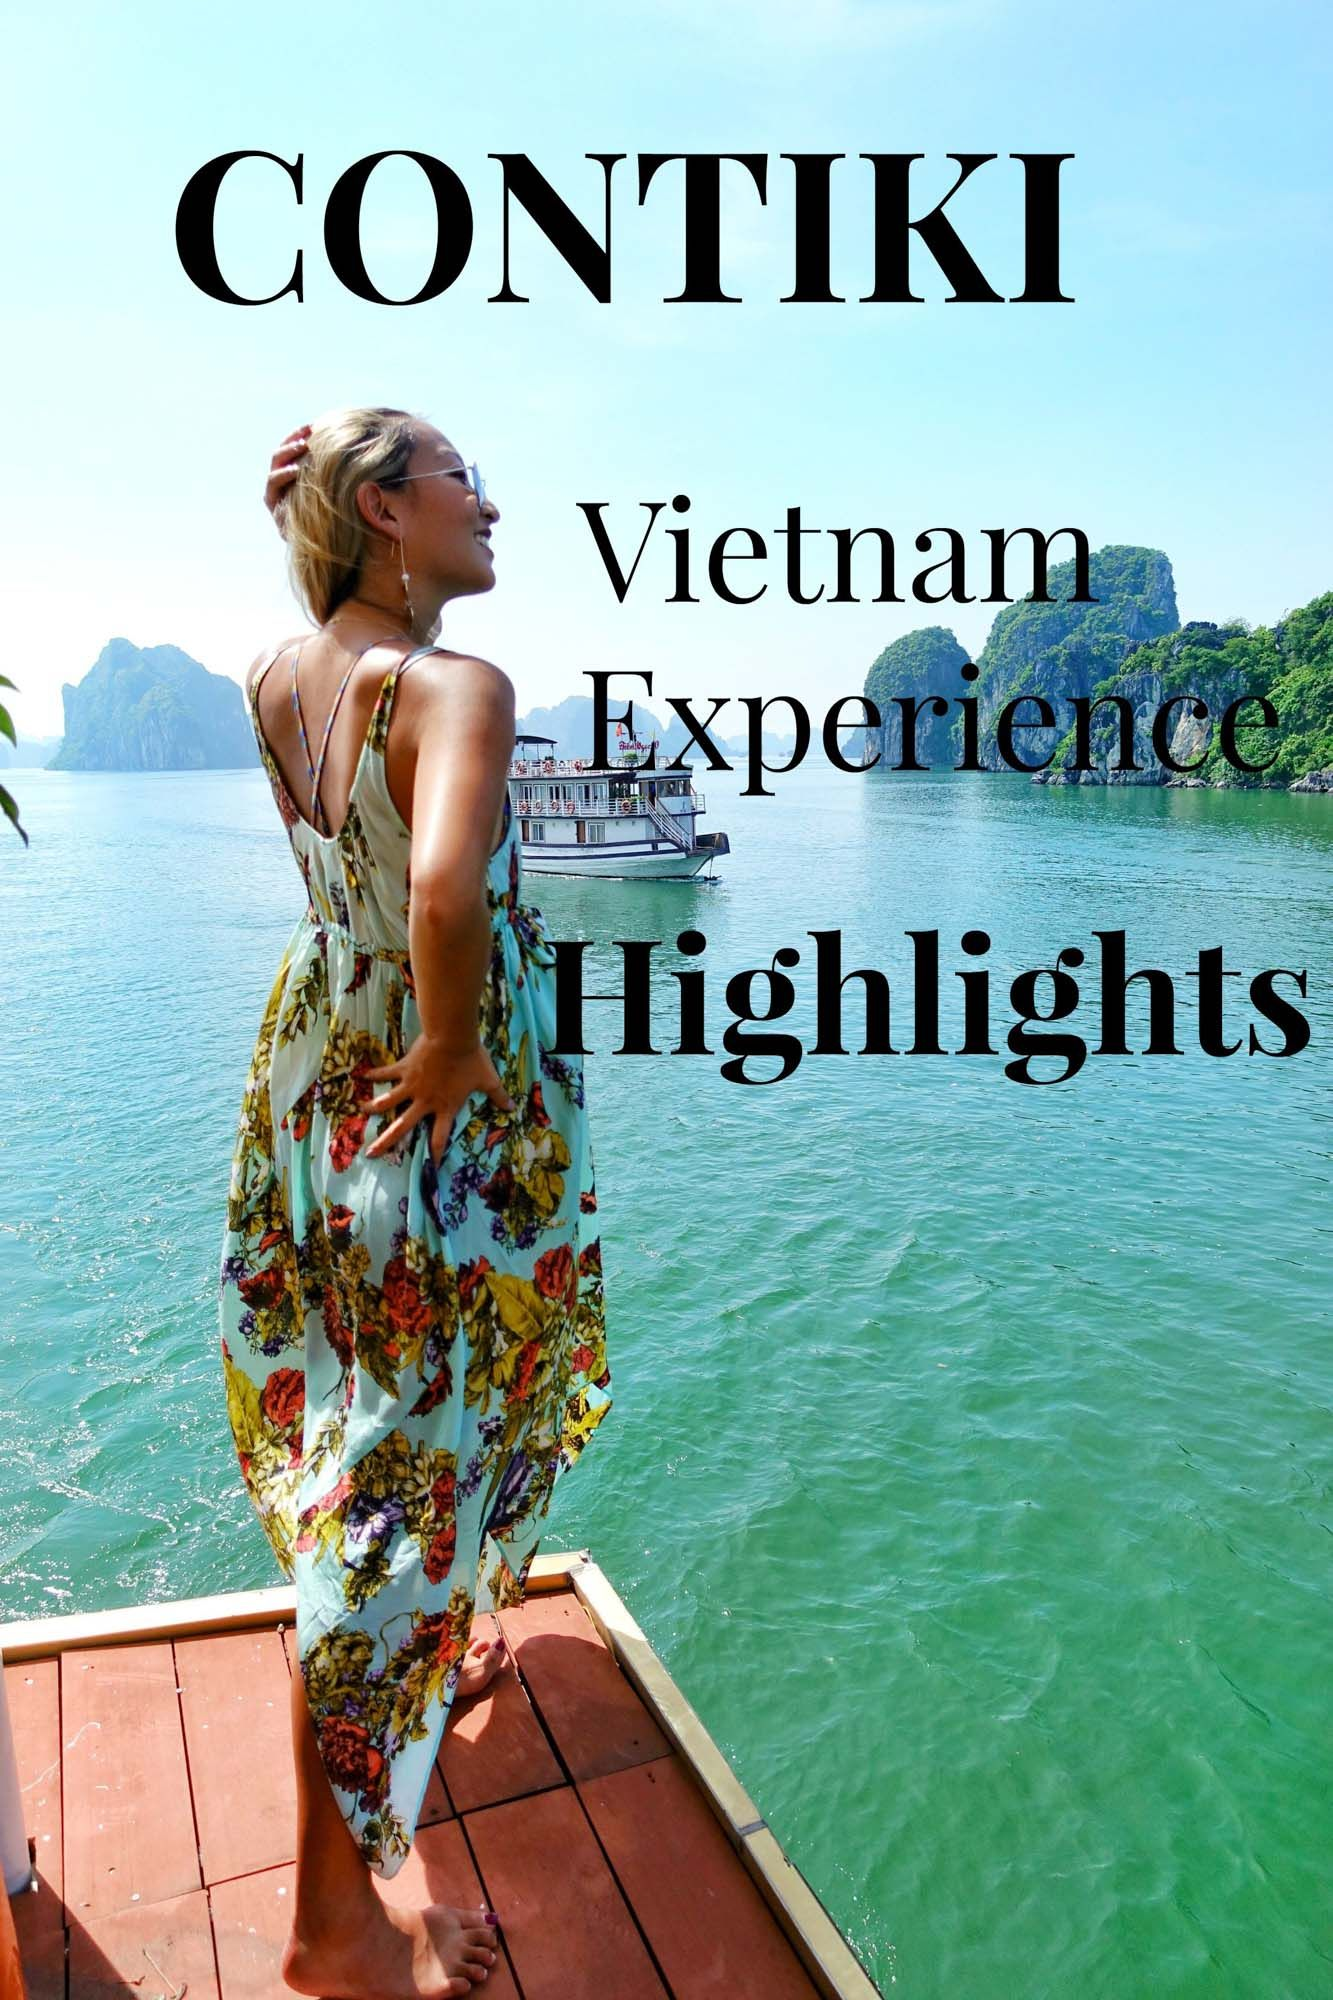 Contiki Vietnam Experience Highlights, Halong Bay